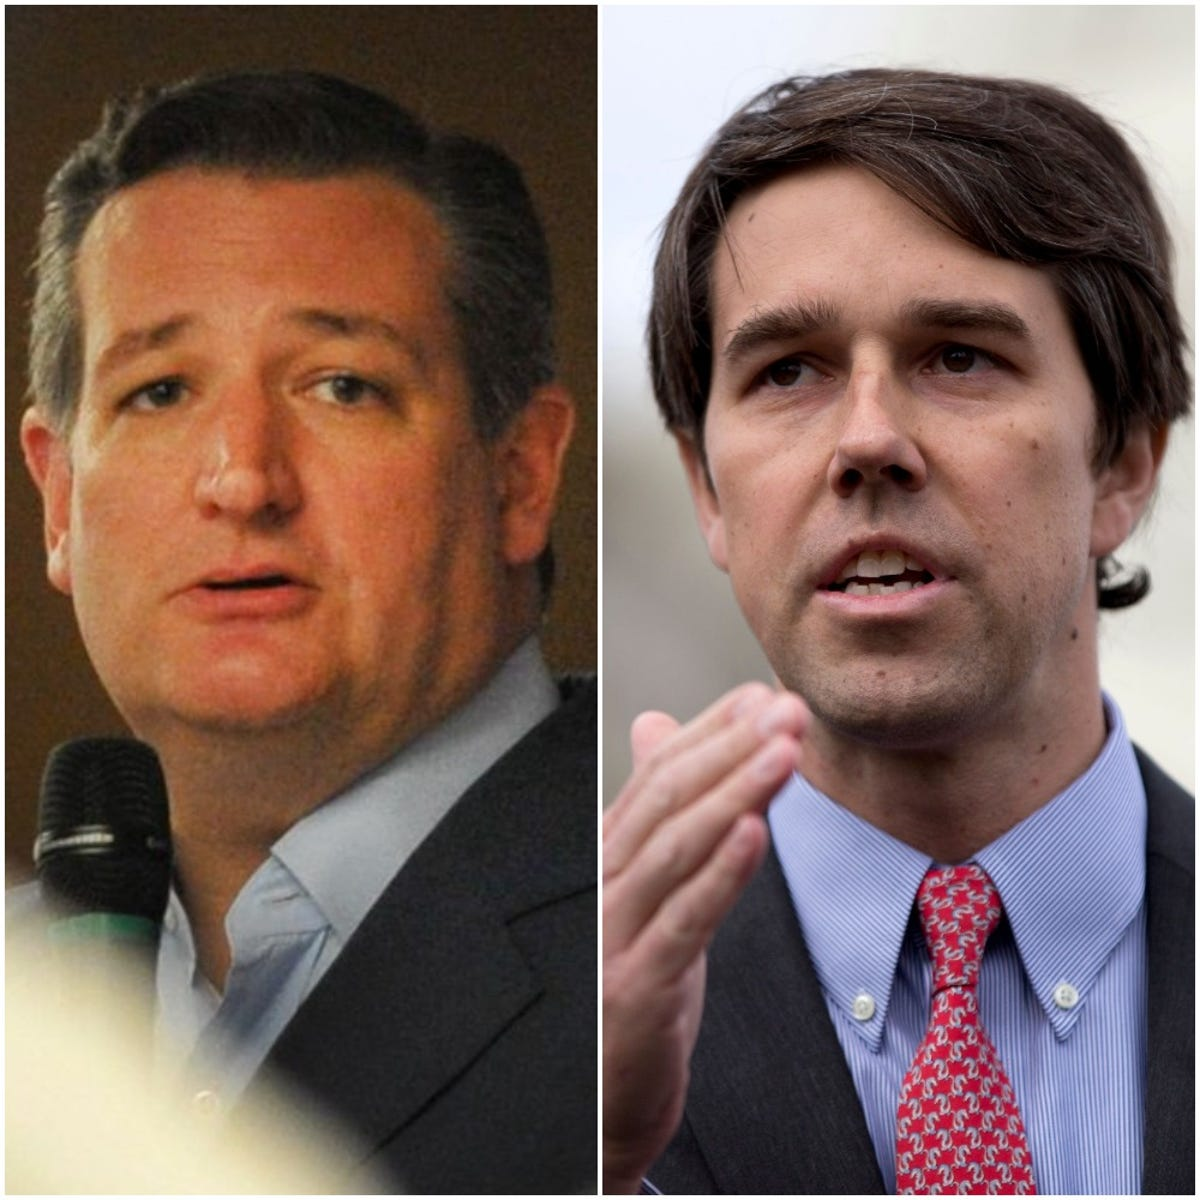 Senate Candidates Stake Out A Range Of Positions On >> Personal Finances Of Ted Cruz Beto O Rourke Viewed In Disclosures